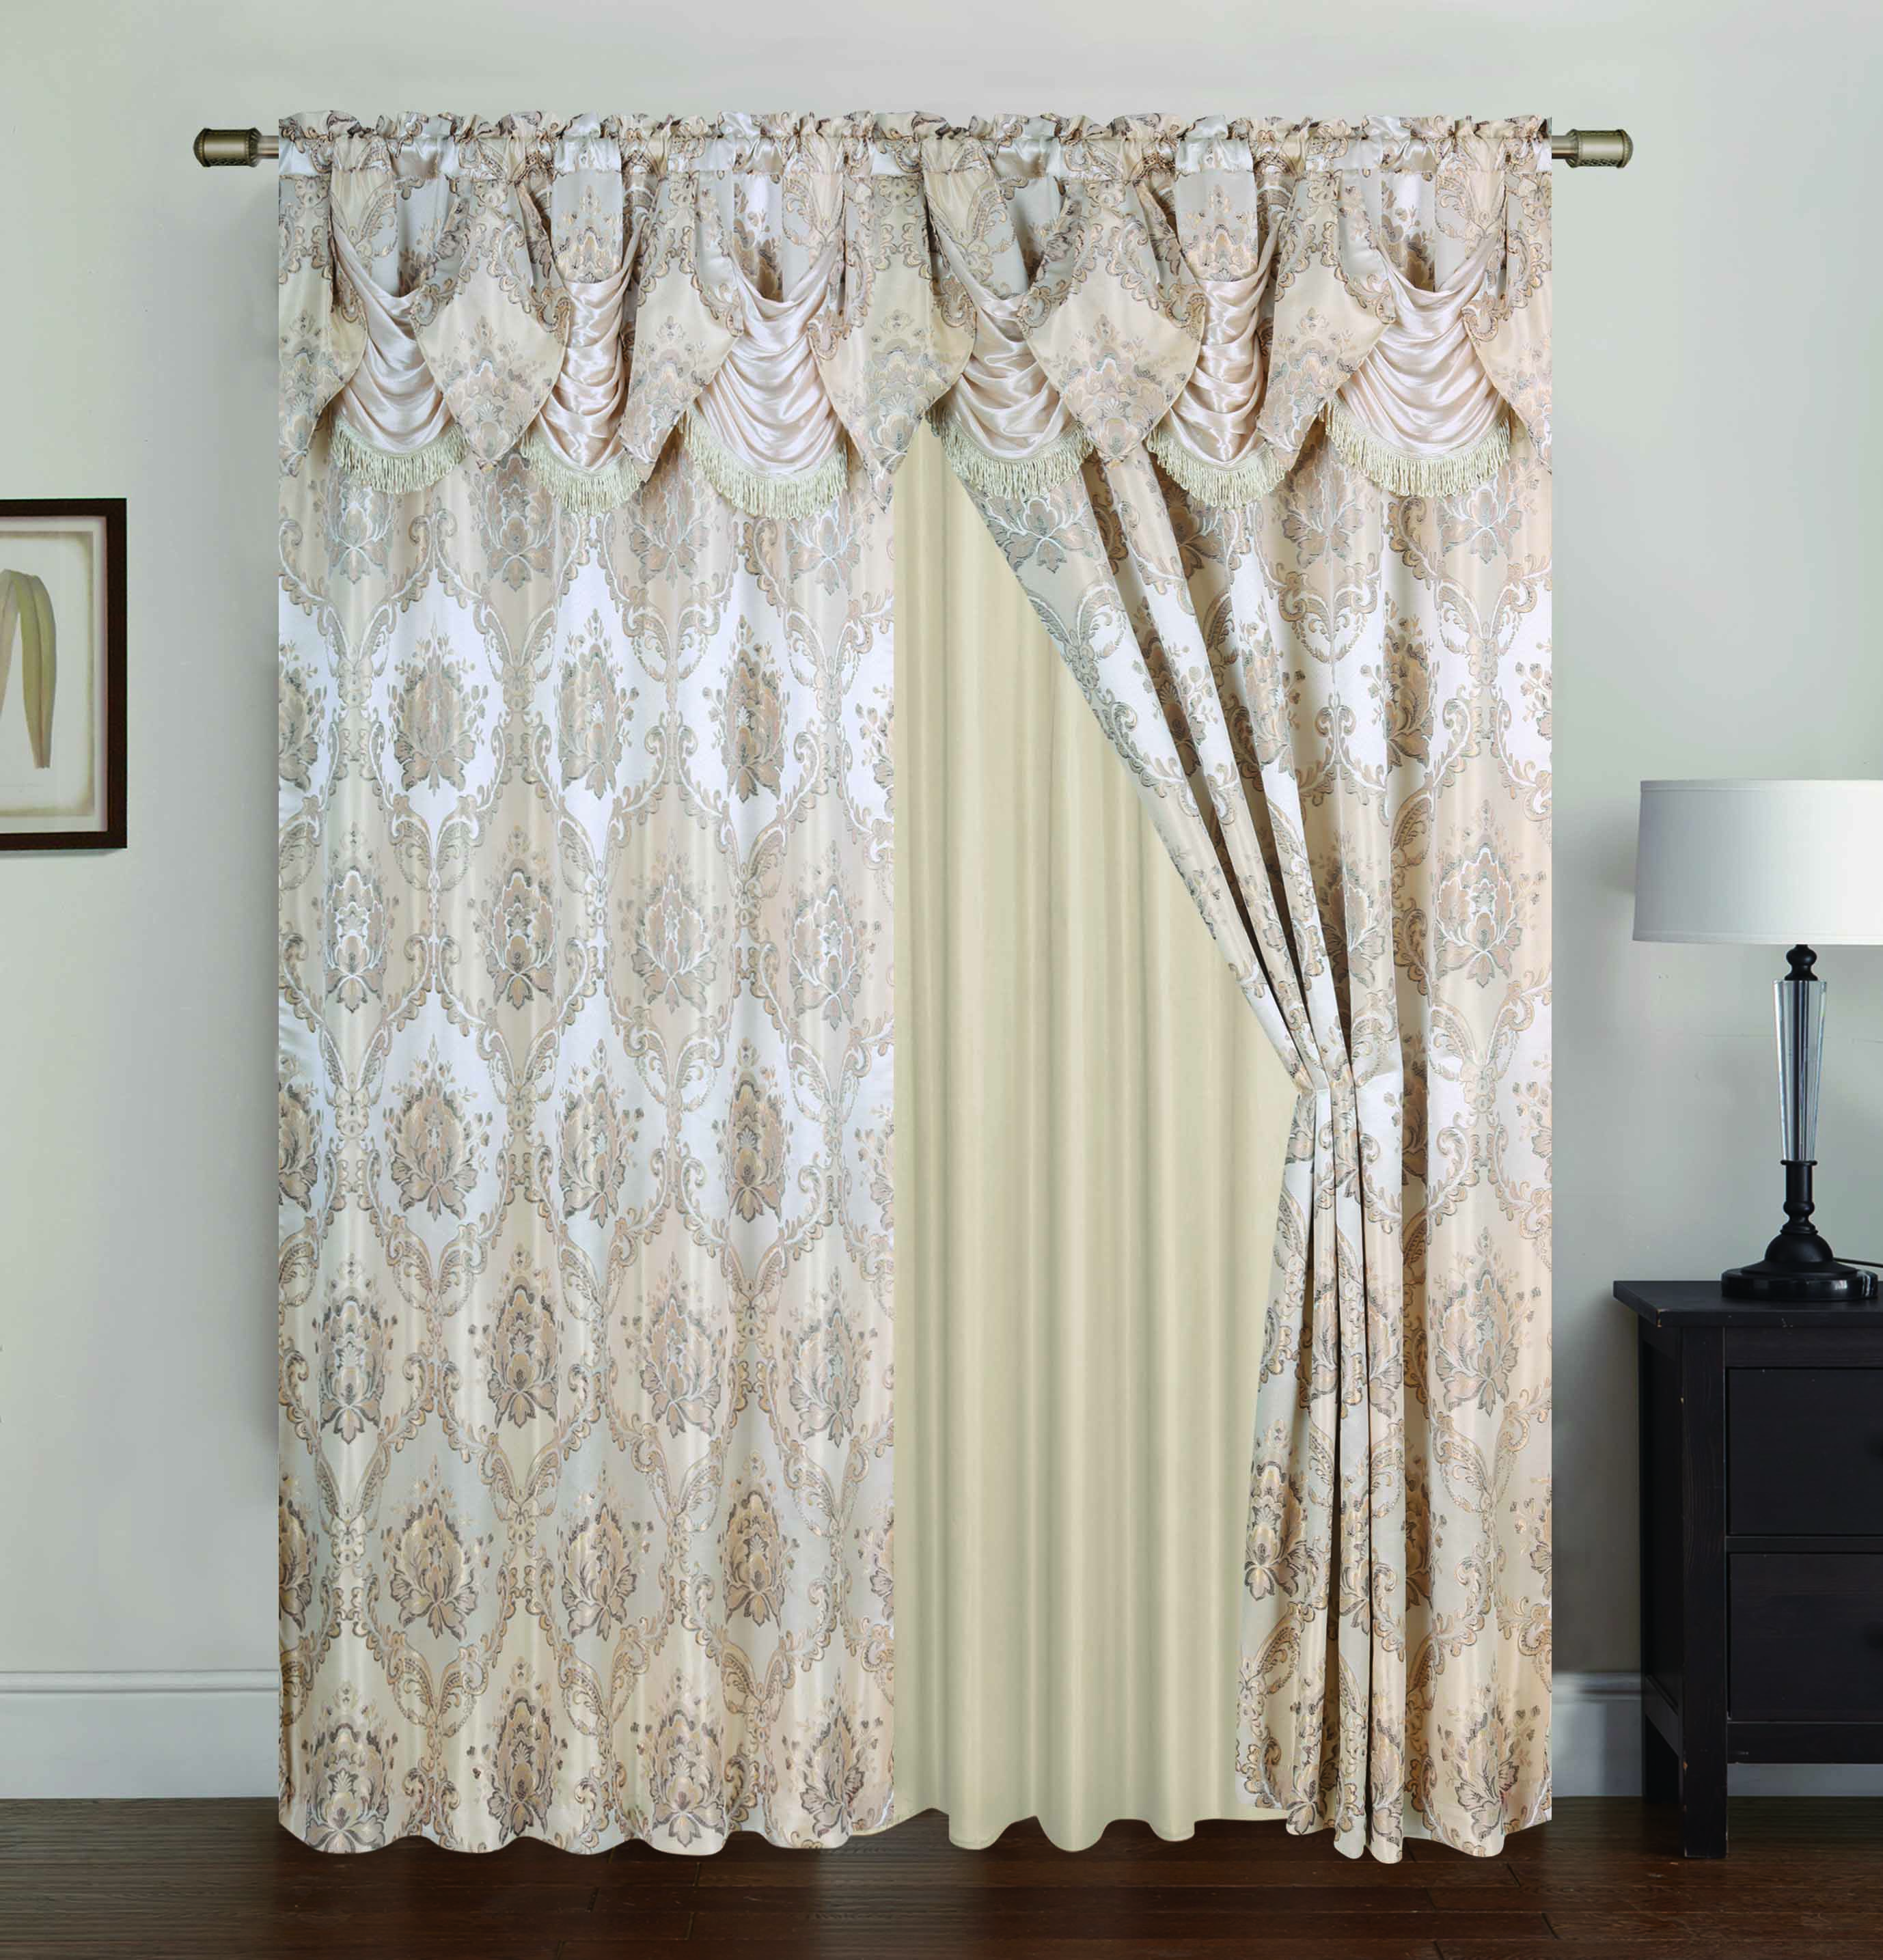 "Vernon Damask Jacquard 54 x 84 in. Double Rod Pocket Single Curtain Panel w/ Attached 18"" Valance, Beige"